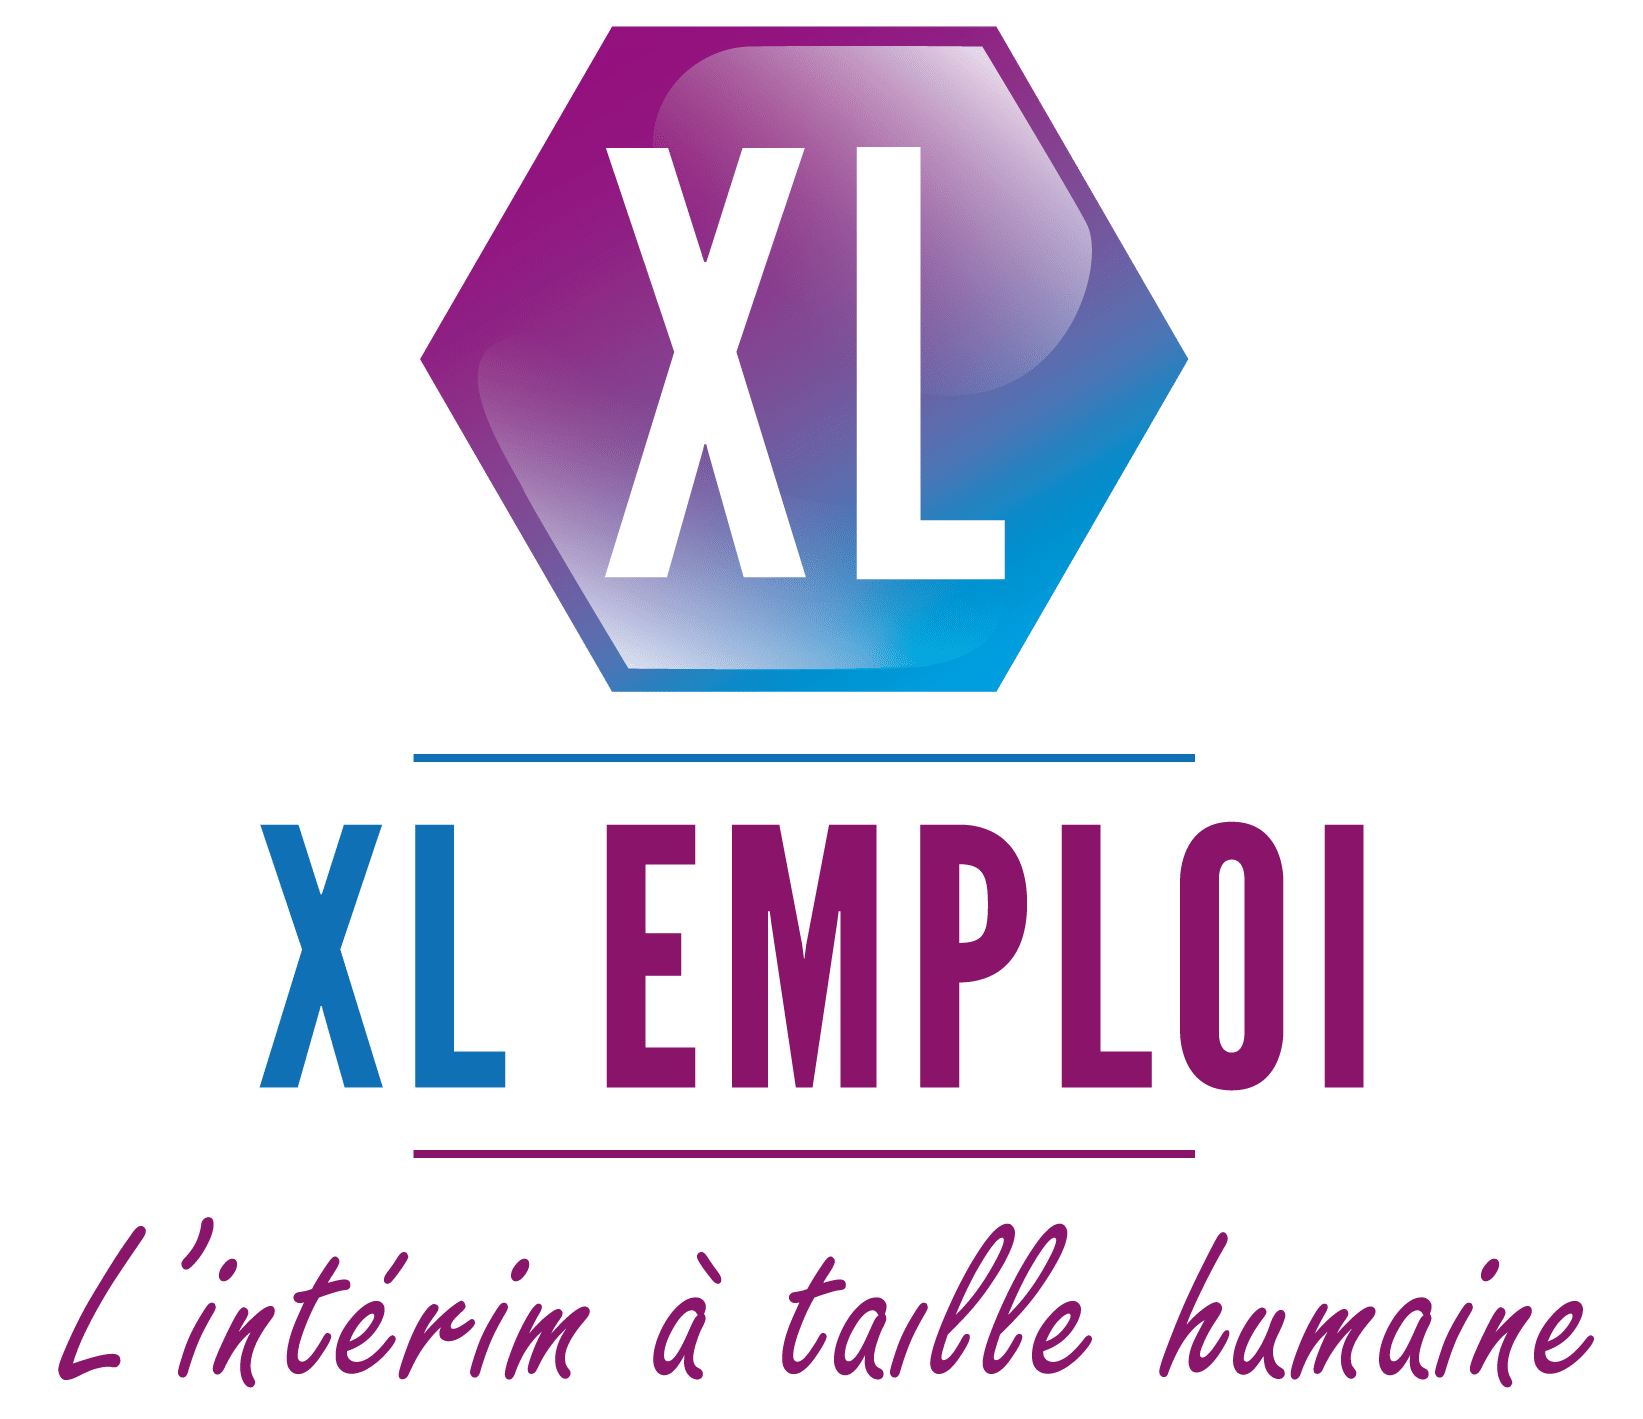 XL EMPLOI, logo transparent.